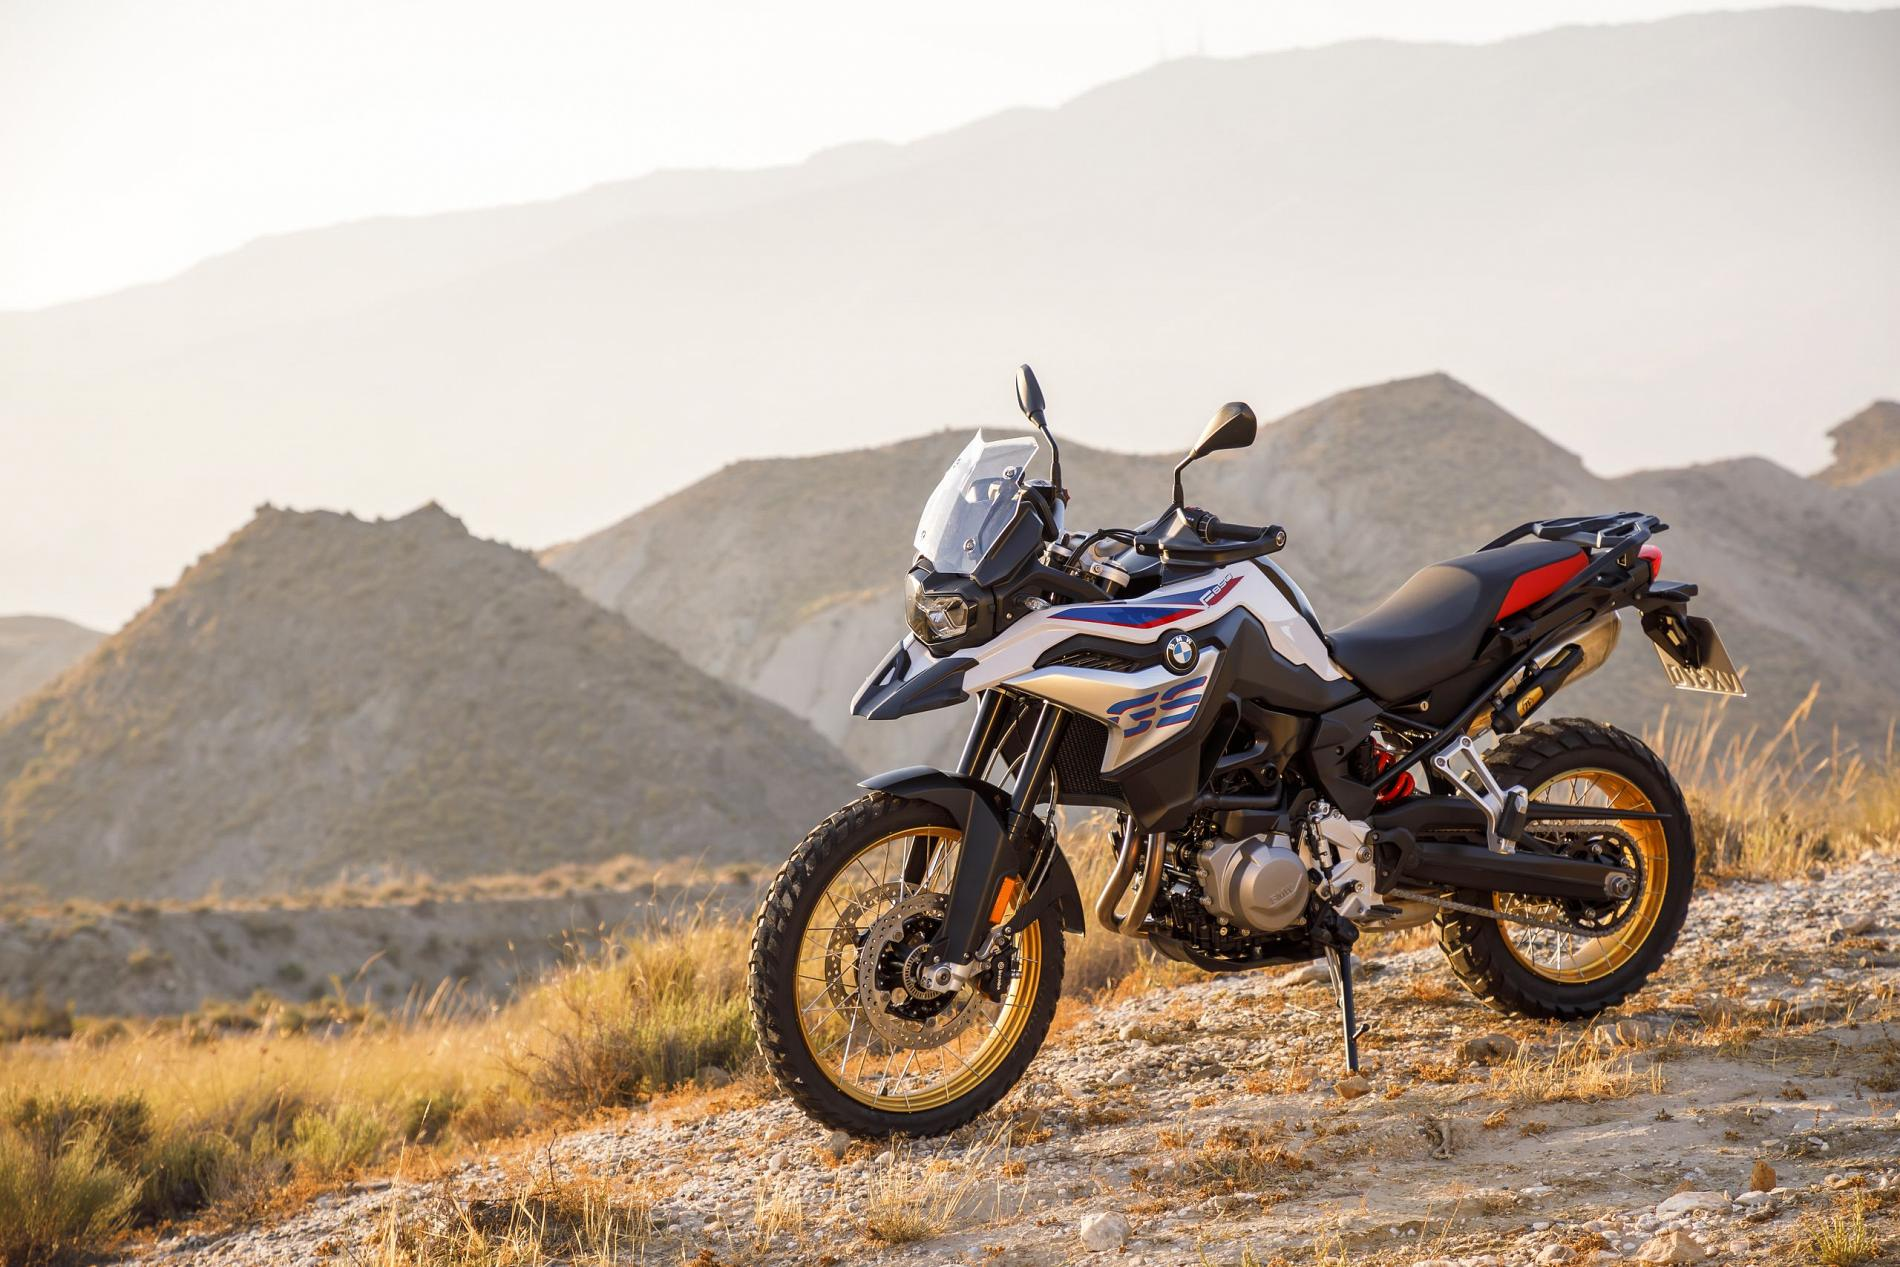 BMW F 850 GS - medium